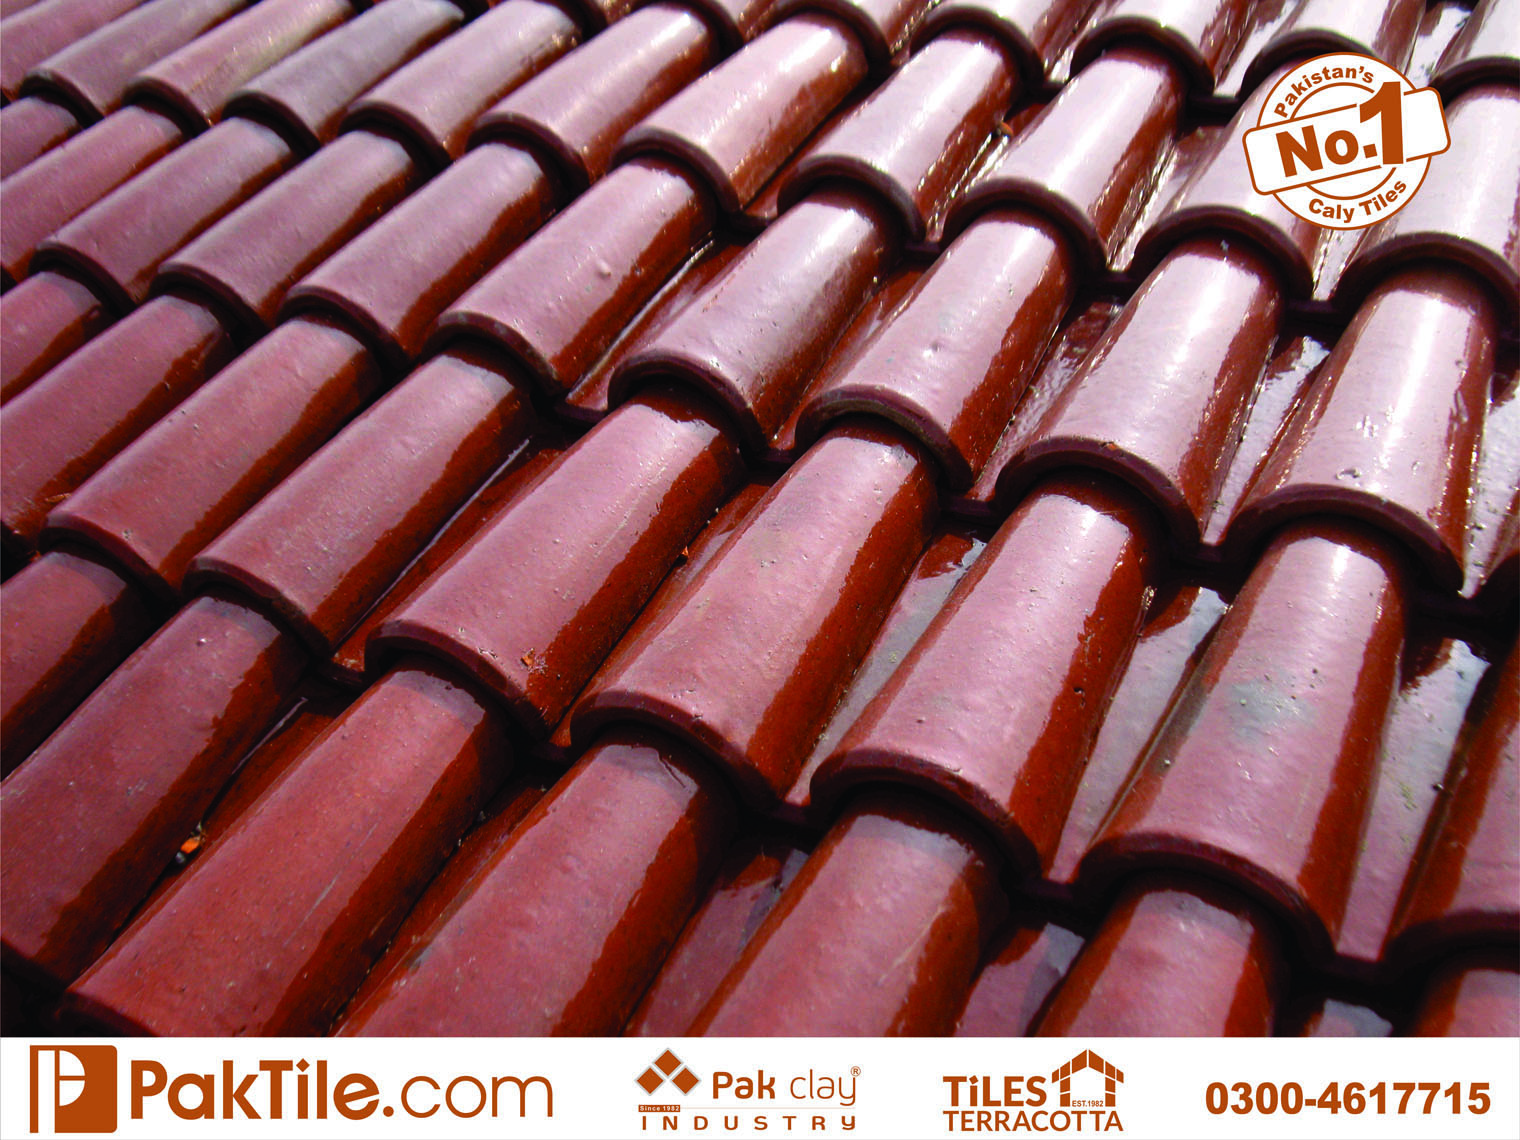 3 Natural Glazed Different Colours Khaprail Roof Tiles Size Types and Prices in Karachi Pakistan Images